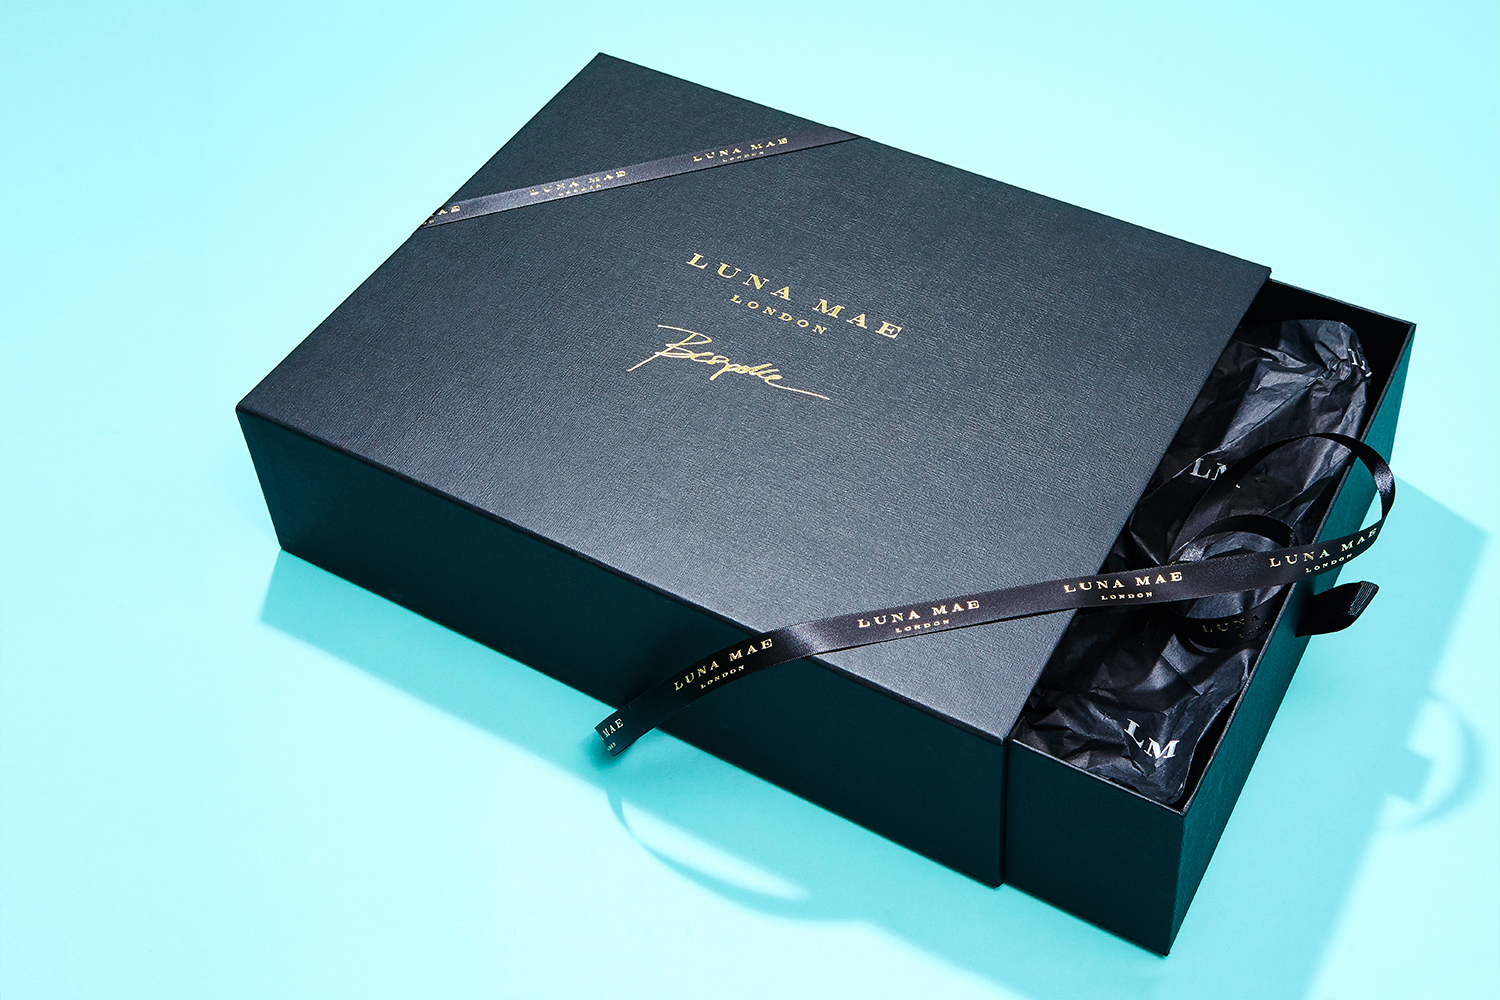 Progress Packaging Luna Mae retail Accessories Bespoke Gift Presentation Box Production Manufacture Tissue Ribbon Gold Foil Block